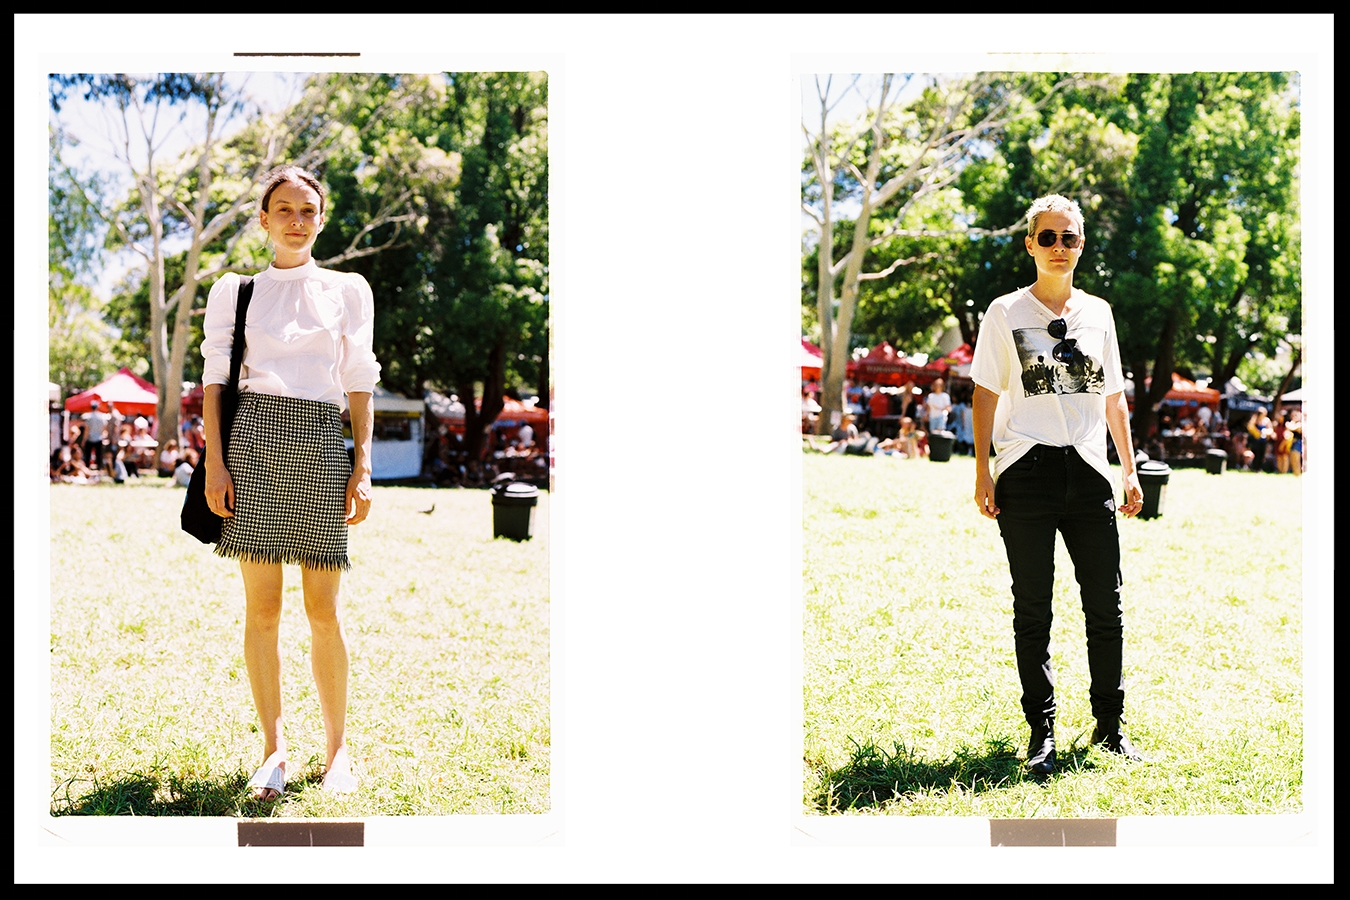 Meet Ollie (left) @ollie_henderson and Arca (right) @arcybay // Nikon F3 - Fuji Industrial 100 film